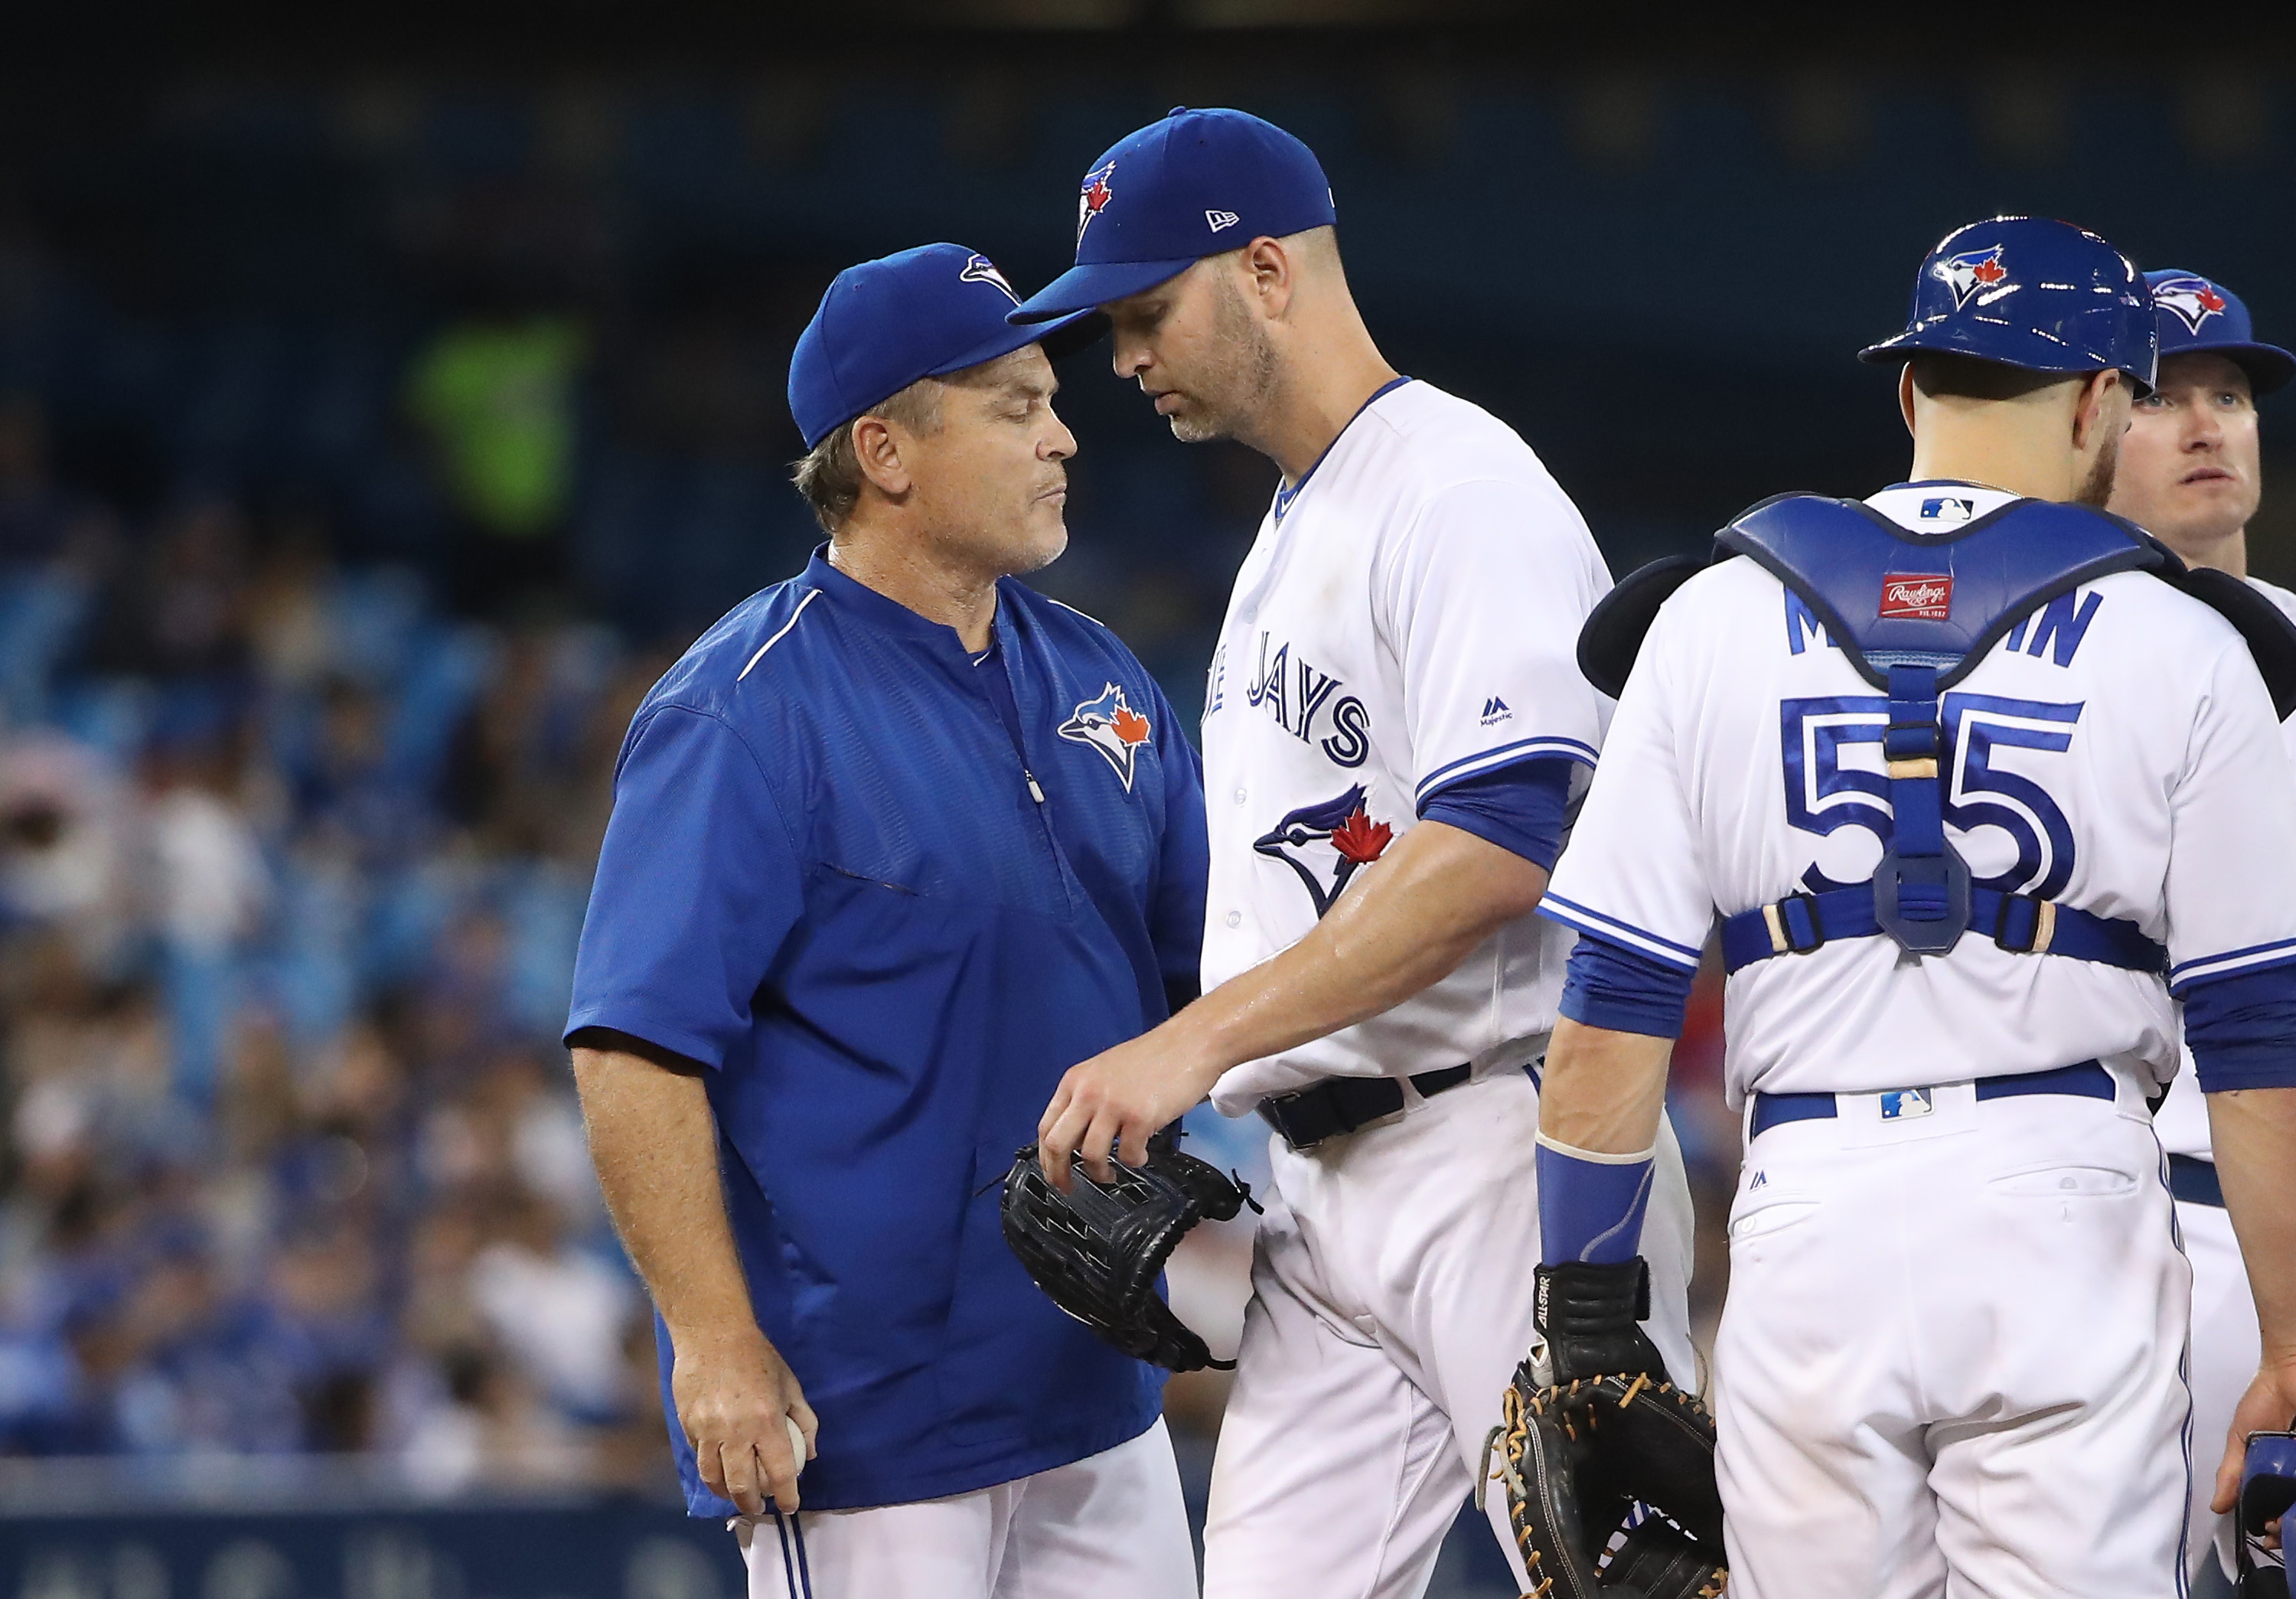 The Blue Jays do not make the weight